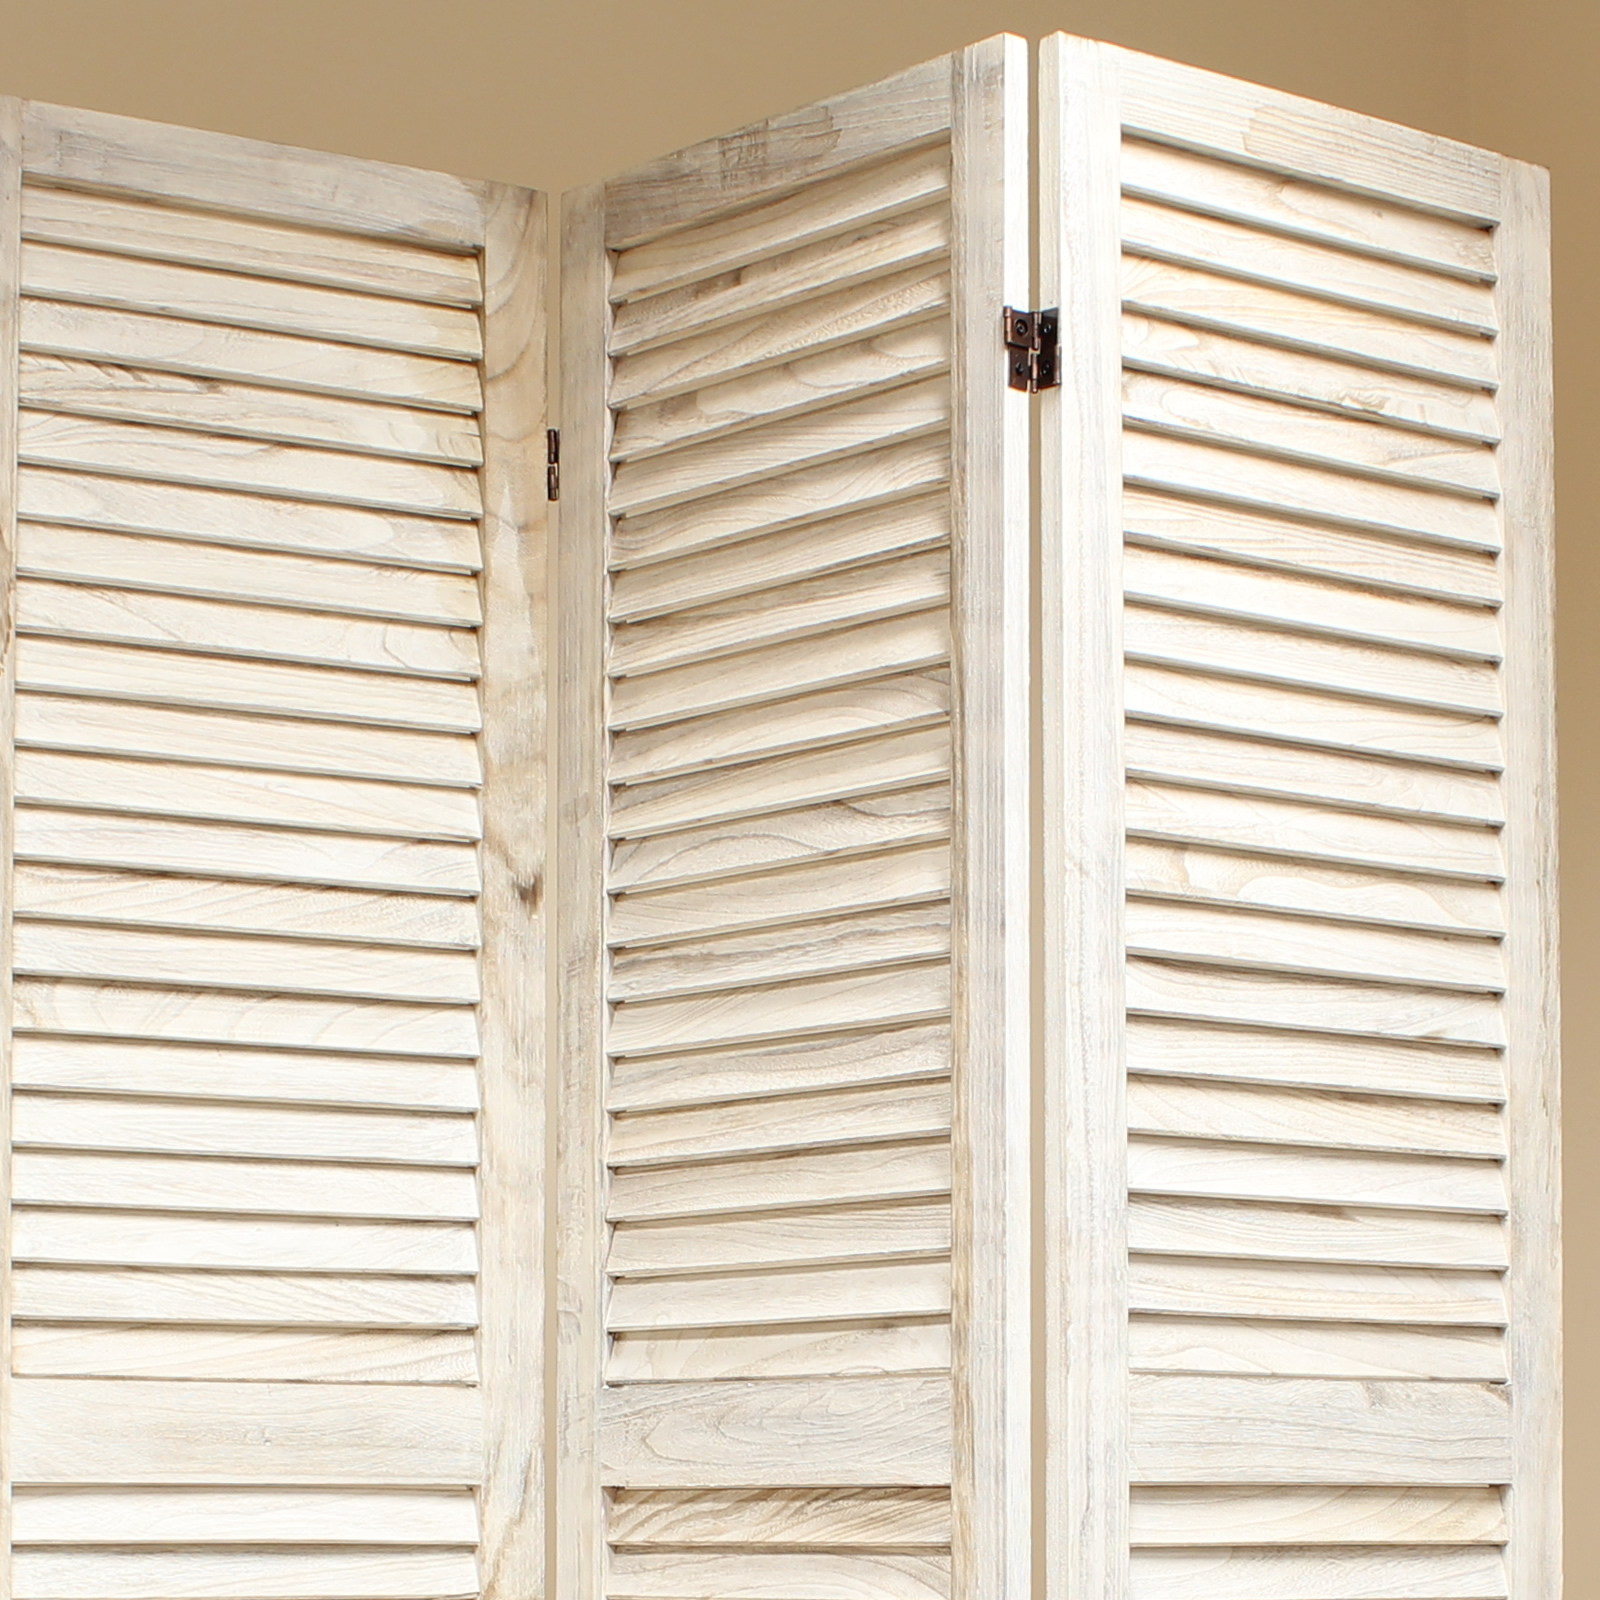 Cream panel wooden slat room divider home privacy screen